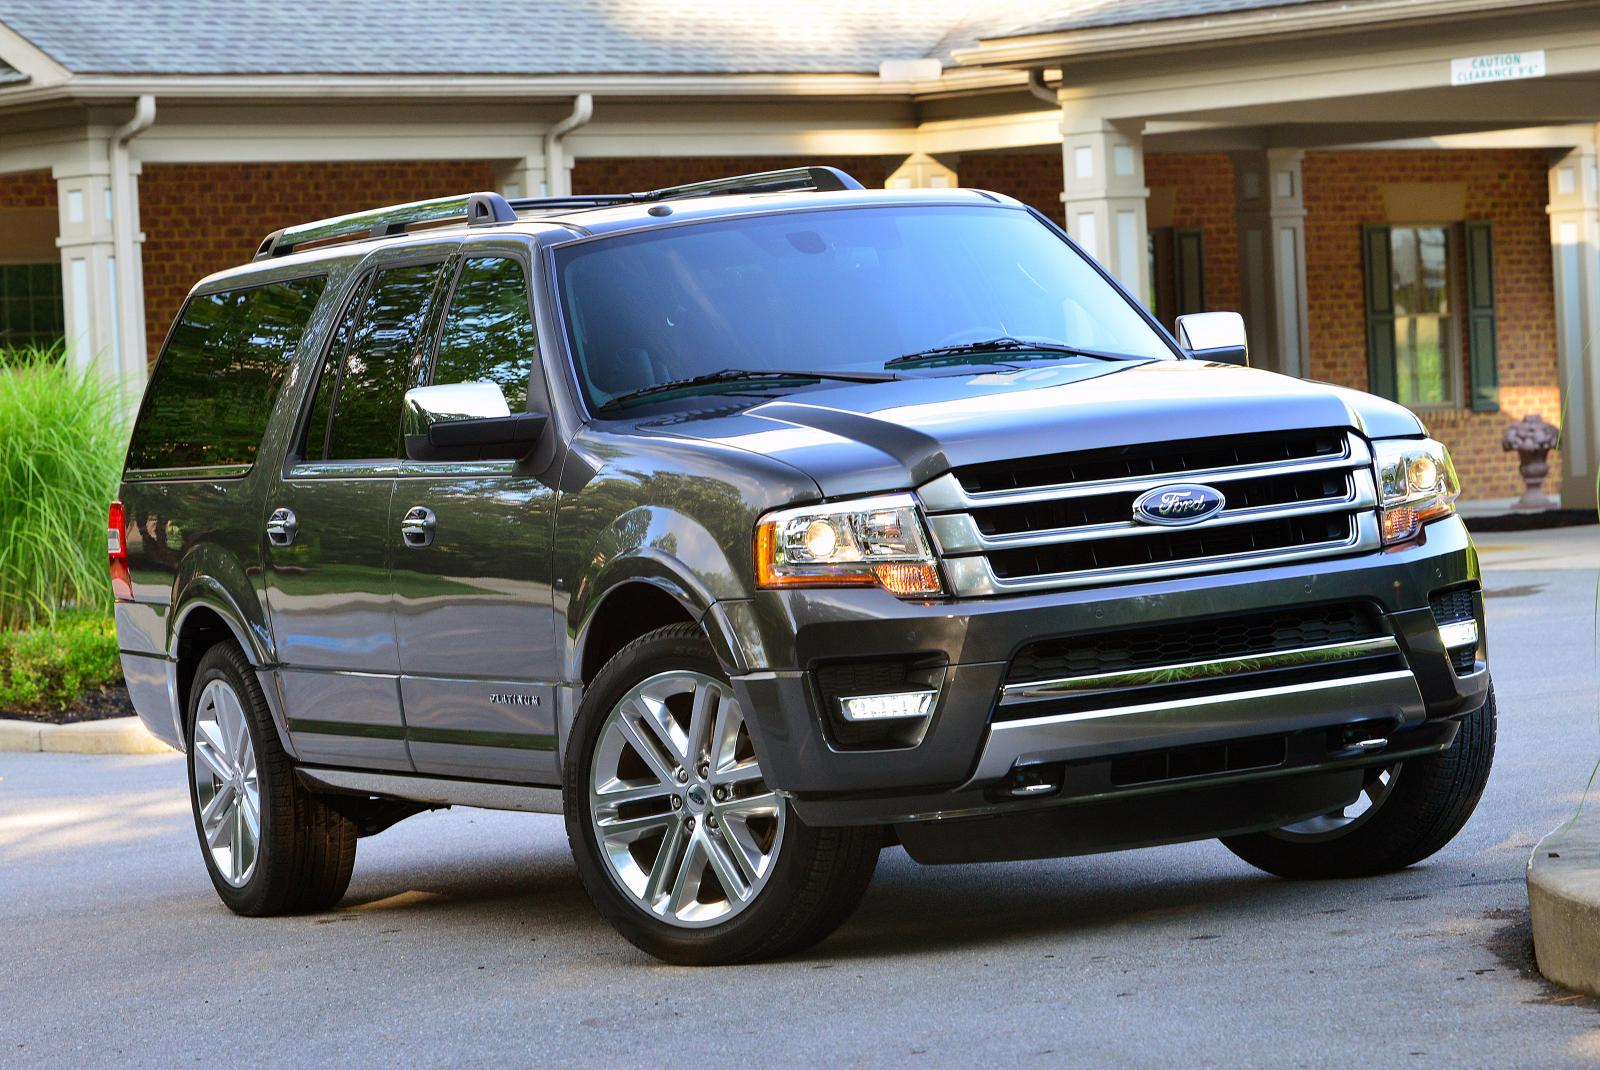 2015 ford expedition. Black Bedroom Furniture Sets. Home Design Ideas